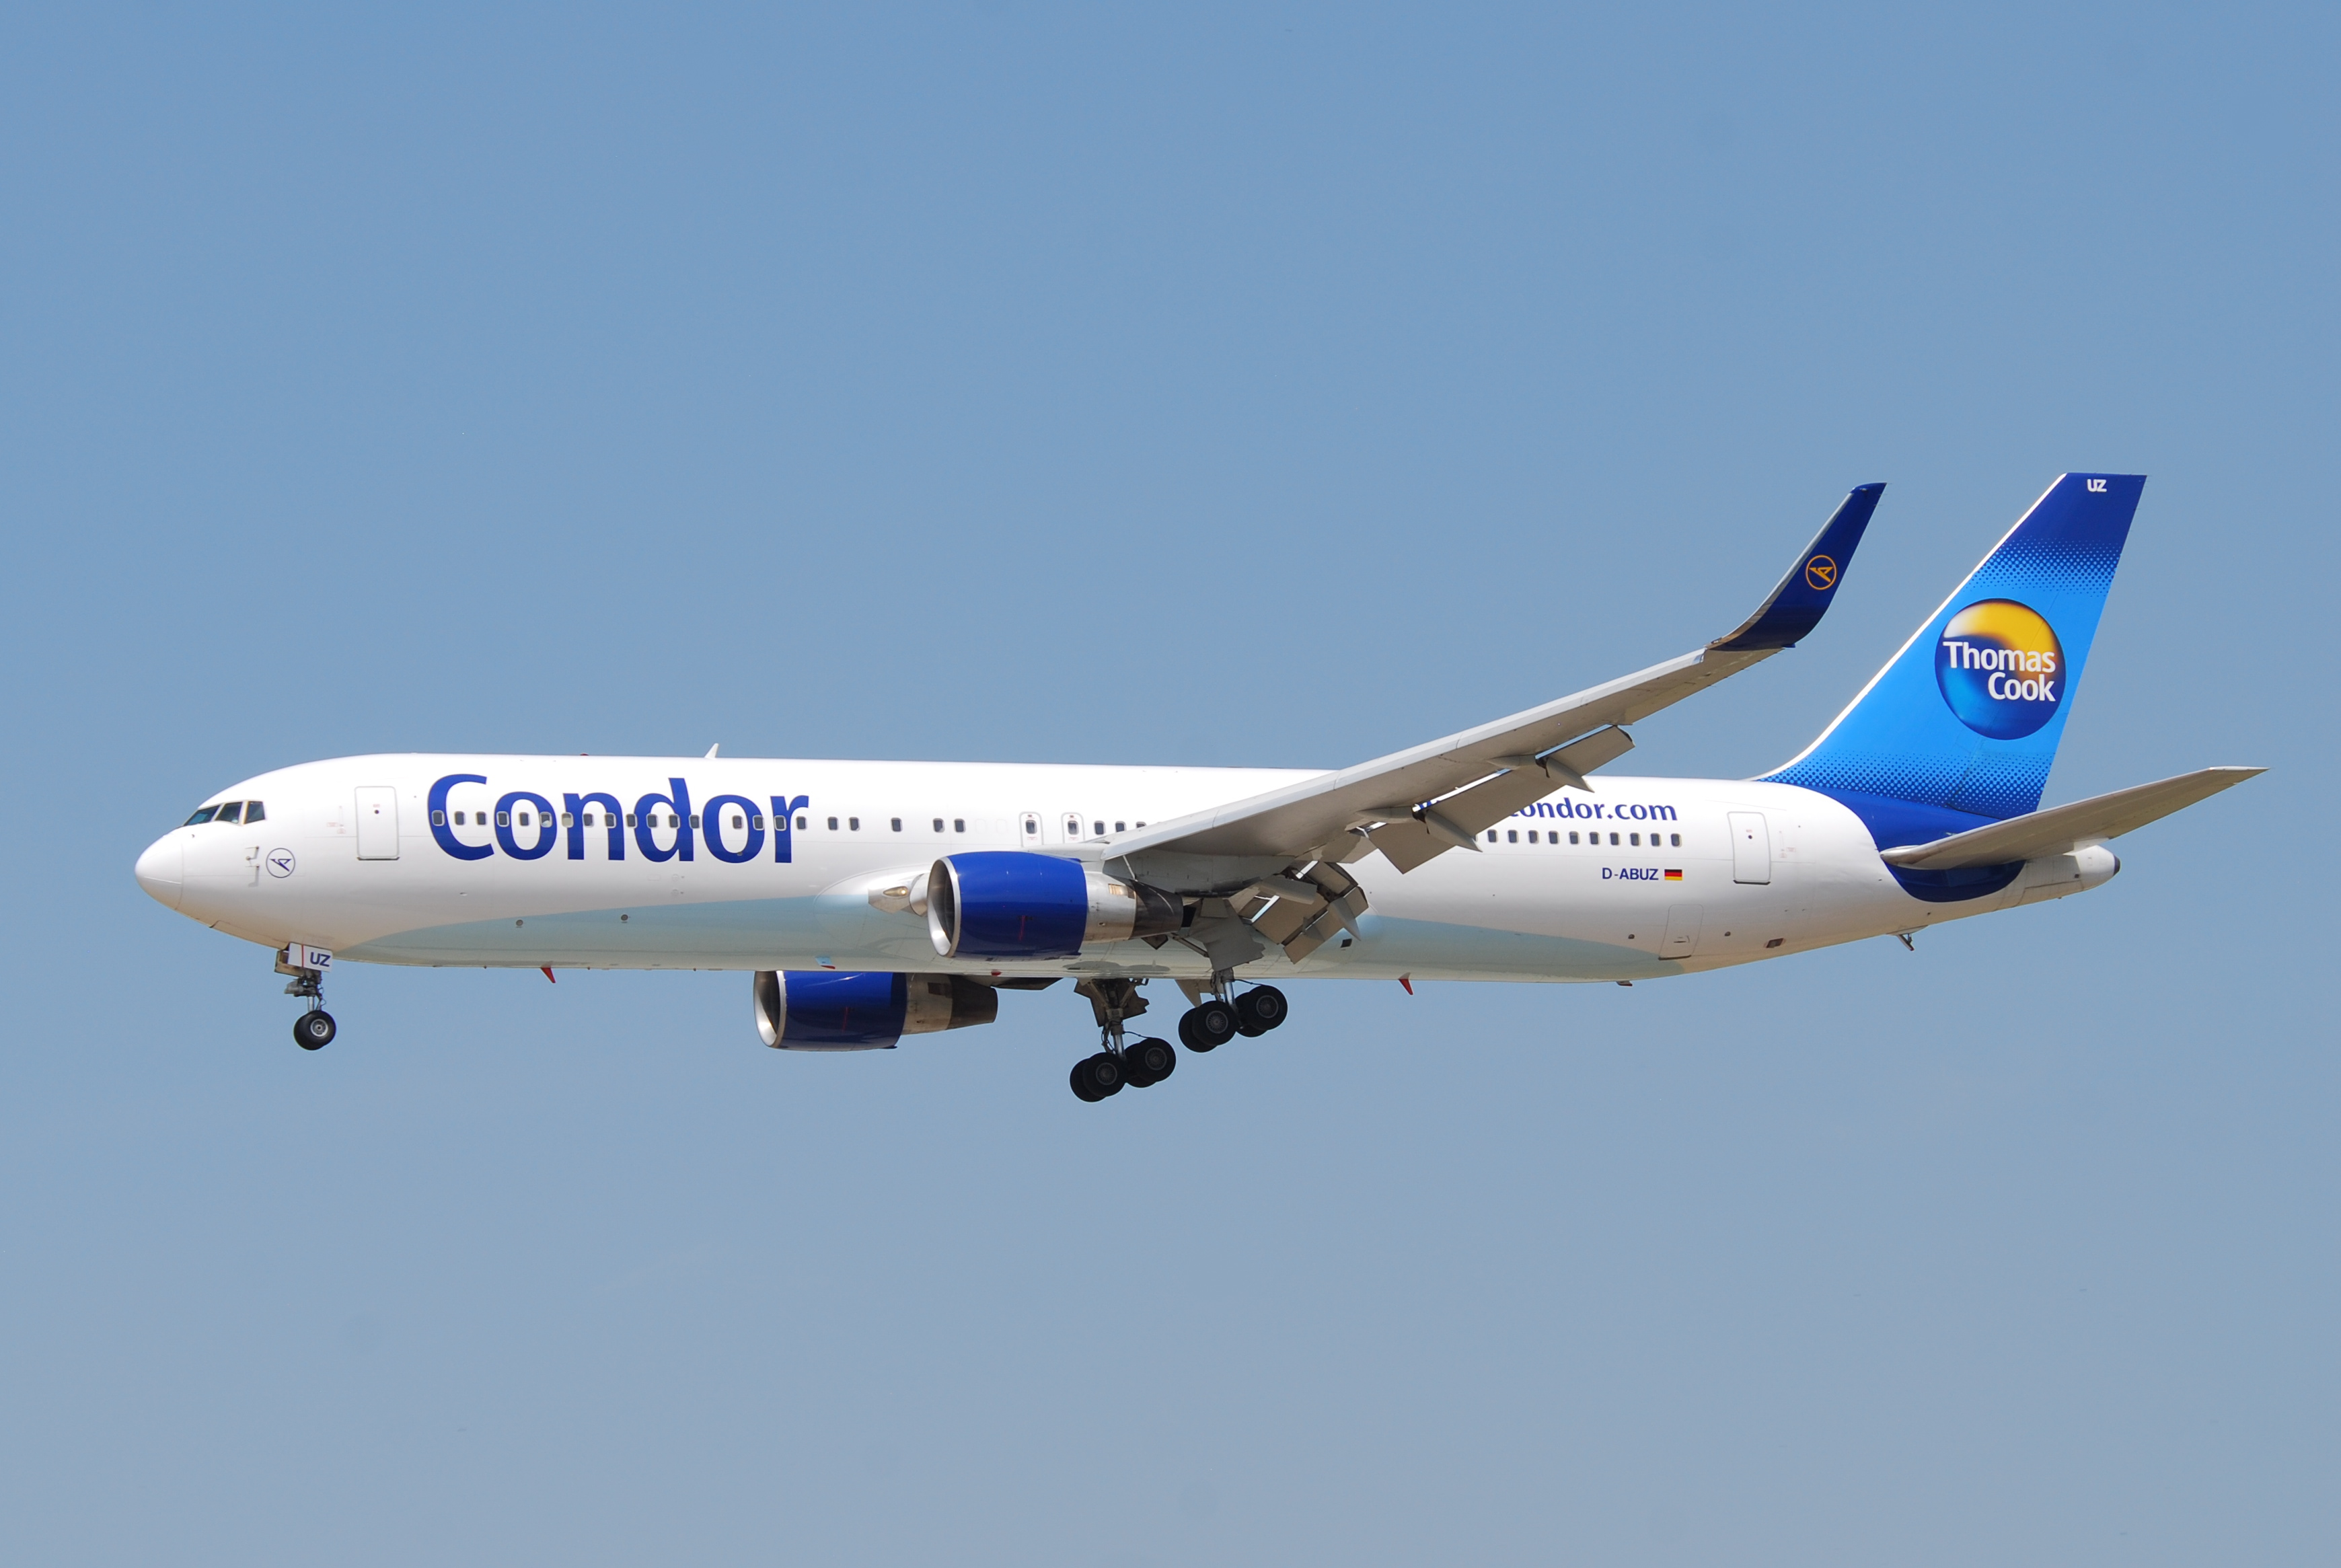 Liberty Near Me >> Condor boeing 767 Images